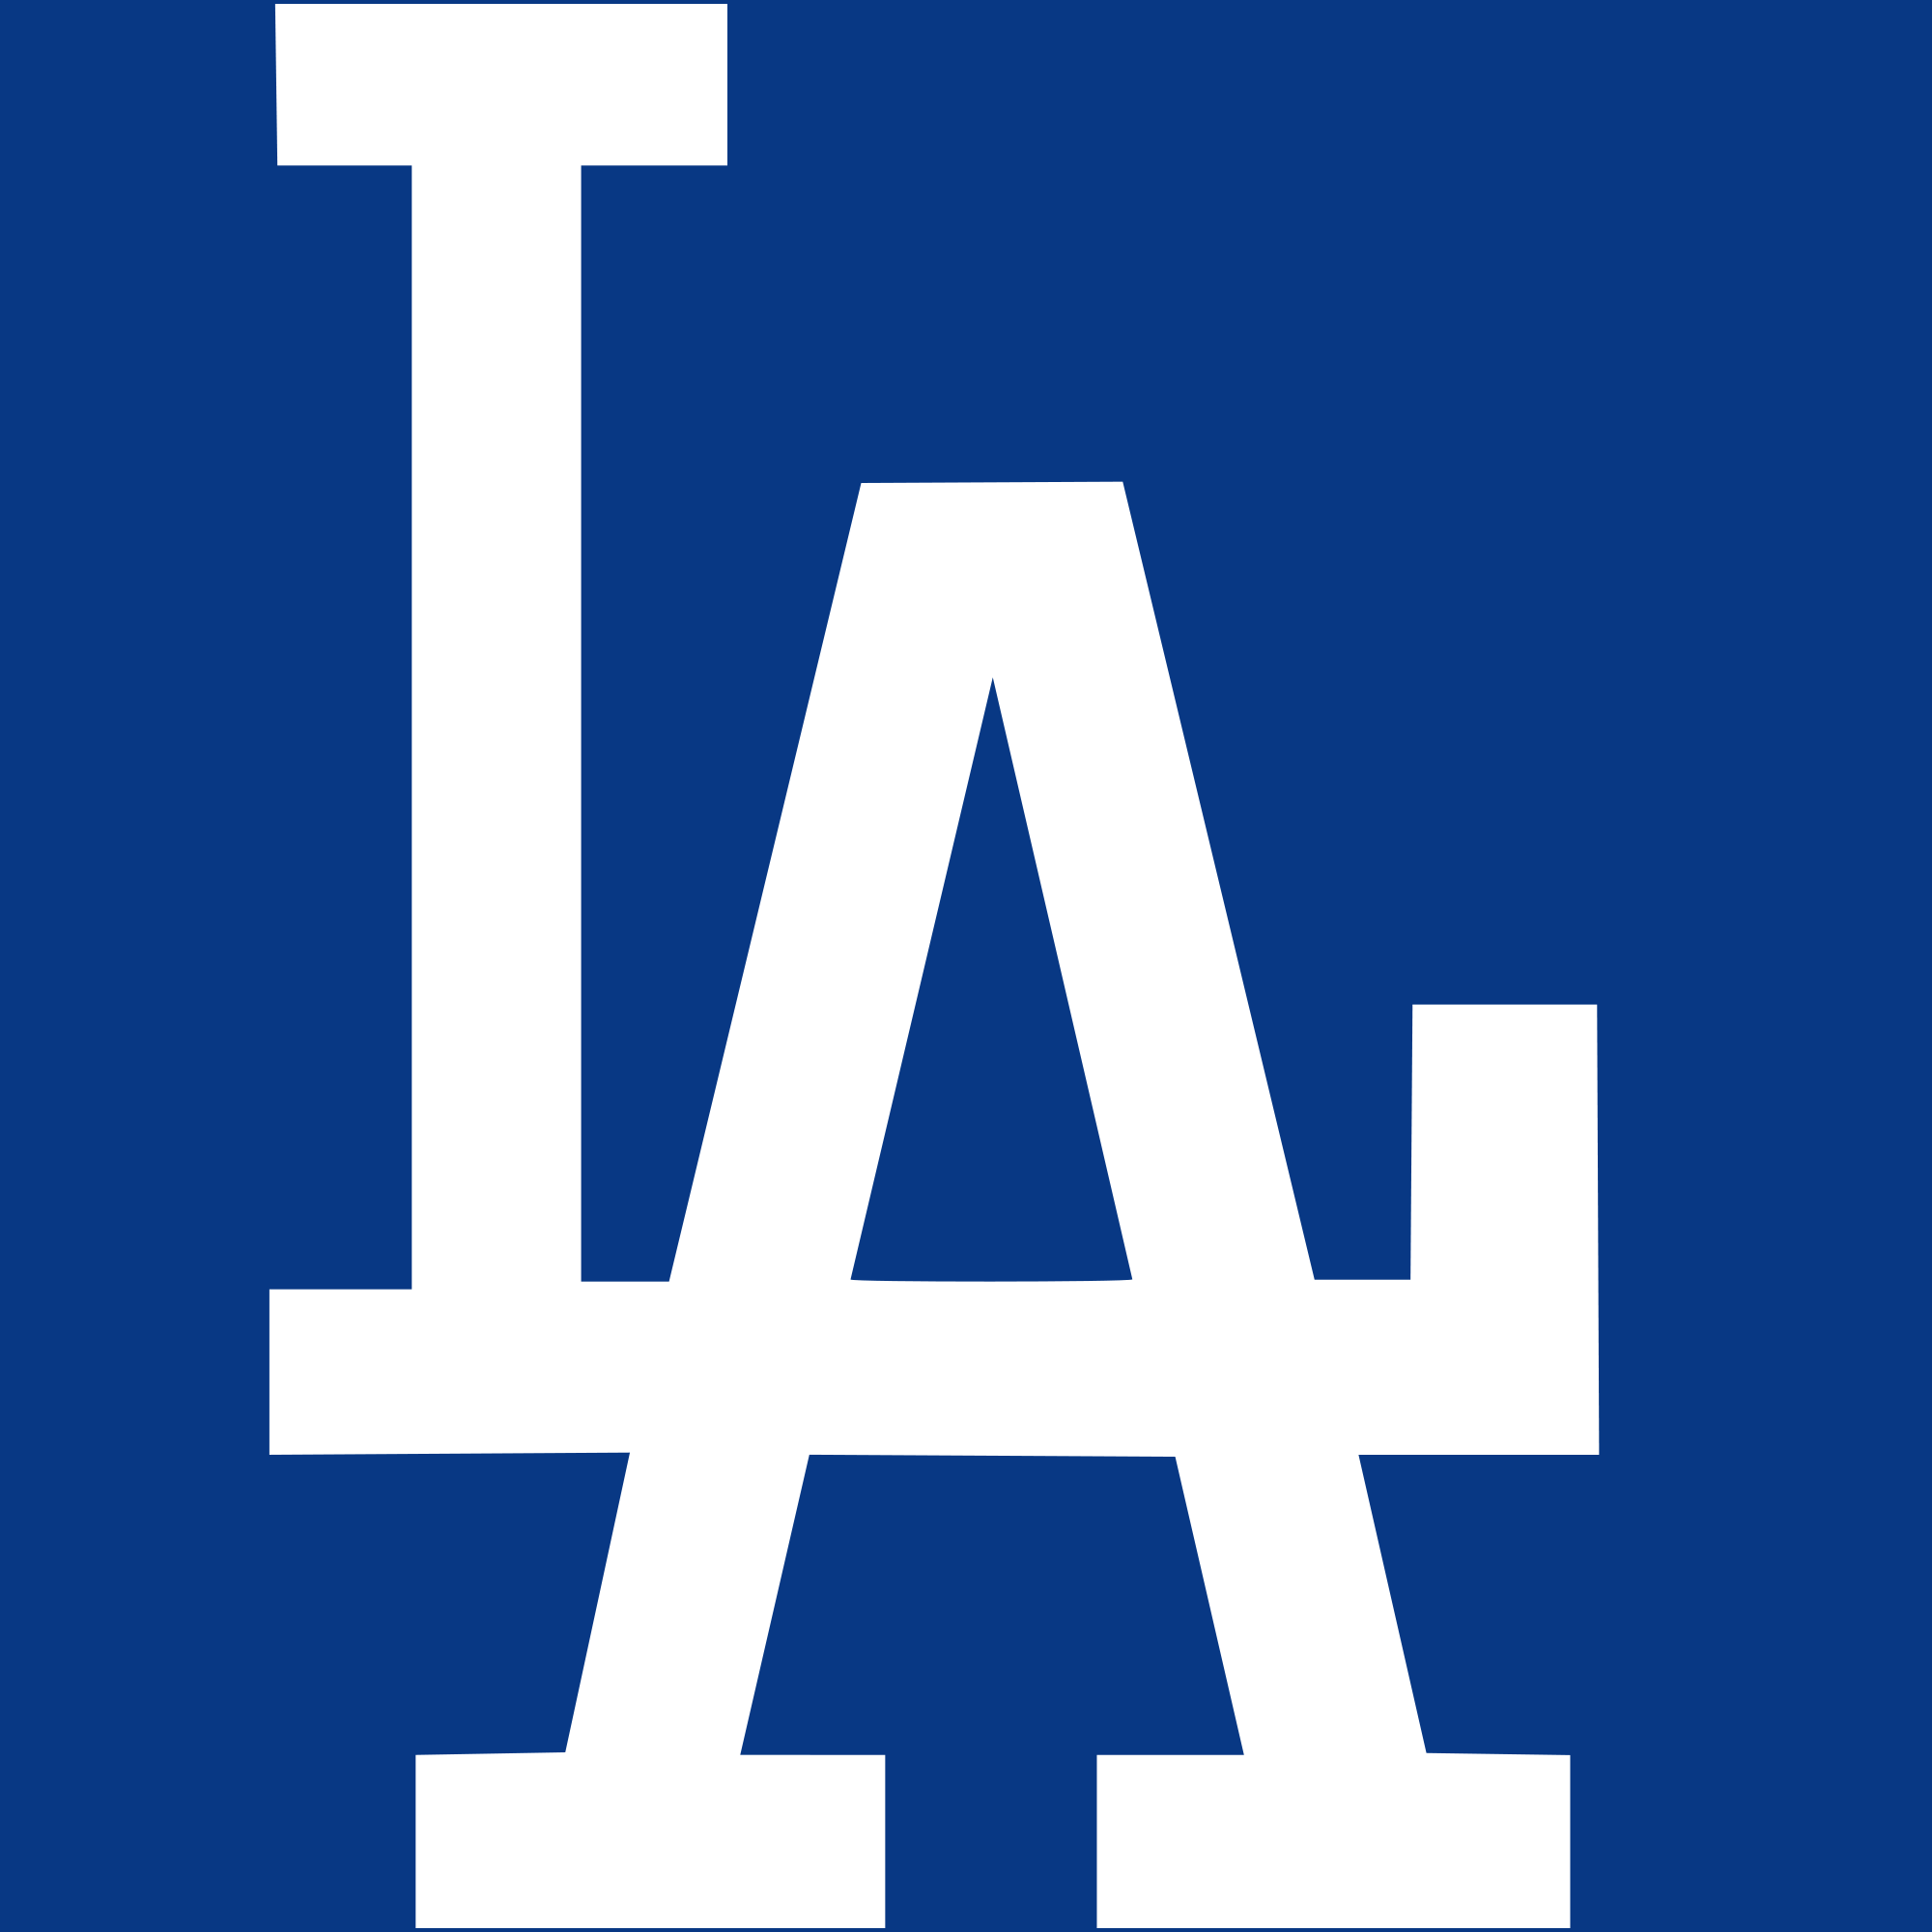 Los angeles dodgers 2018 top 50 prospects prospects1500 buycottarizona Image collections